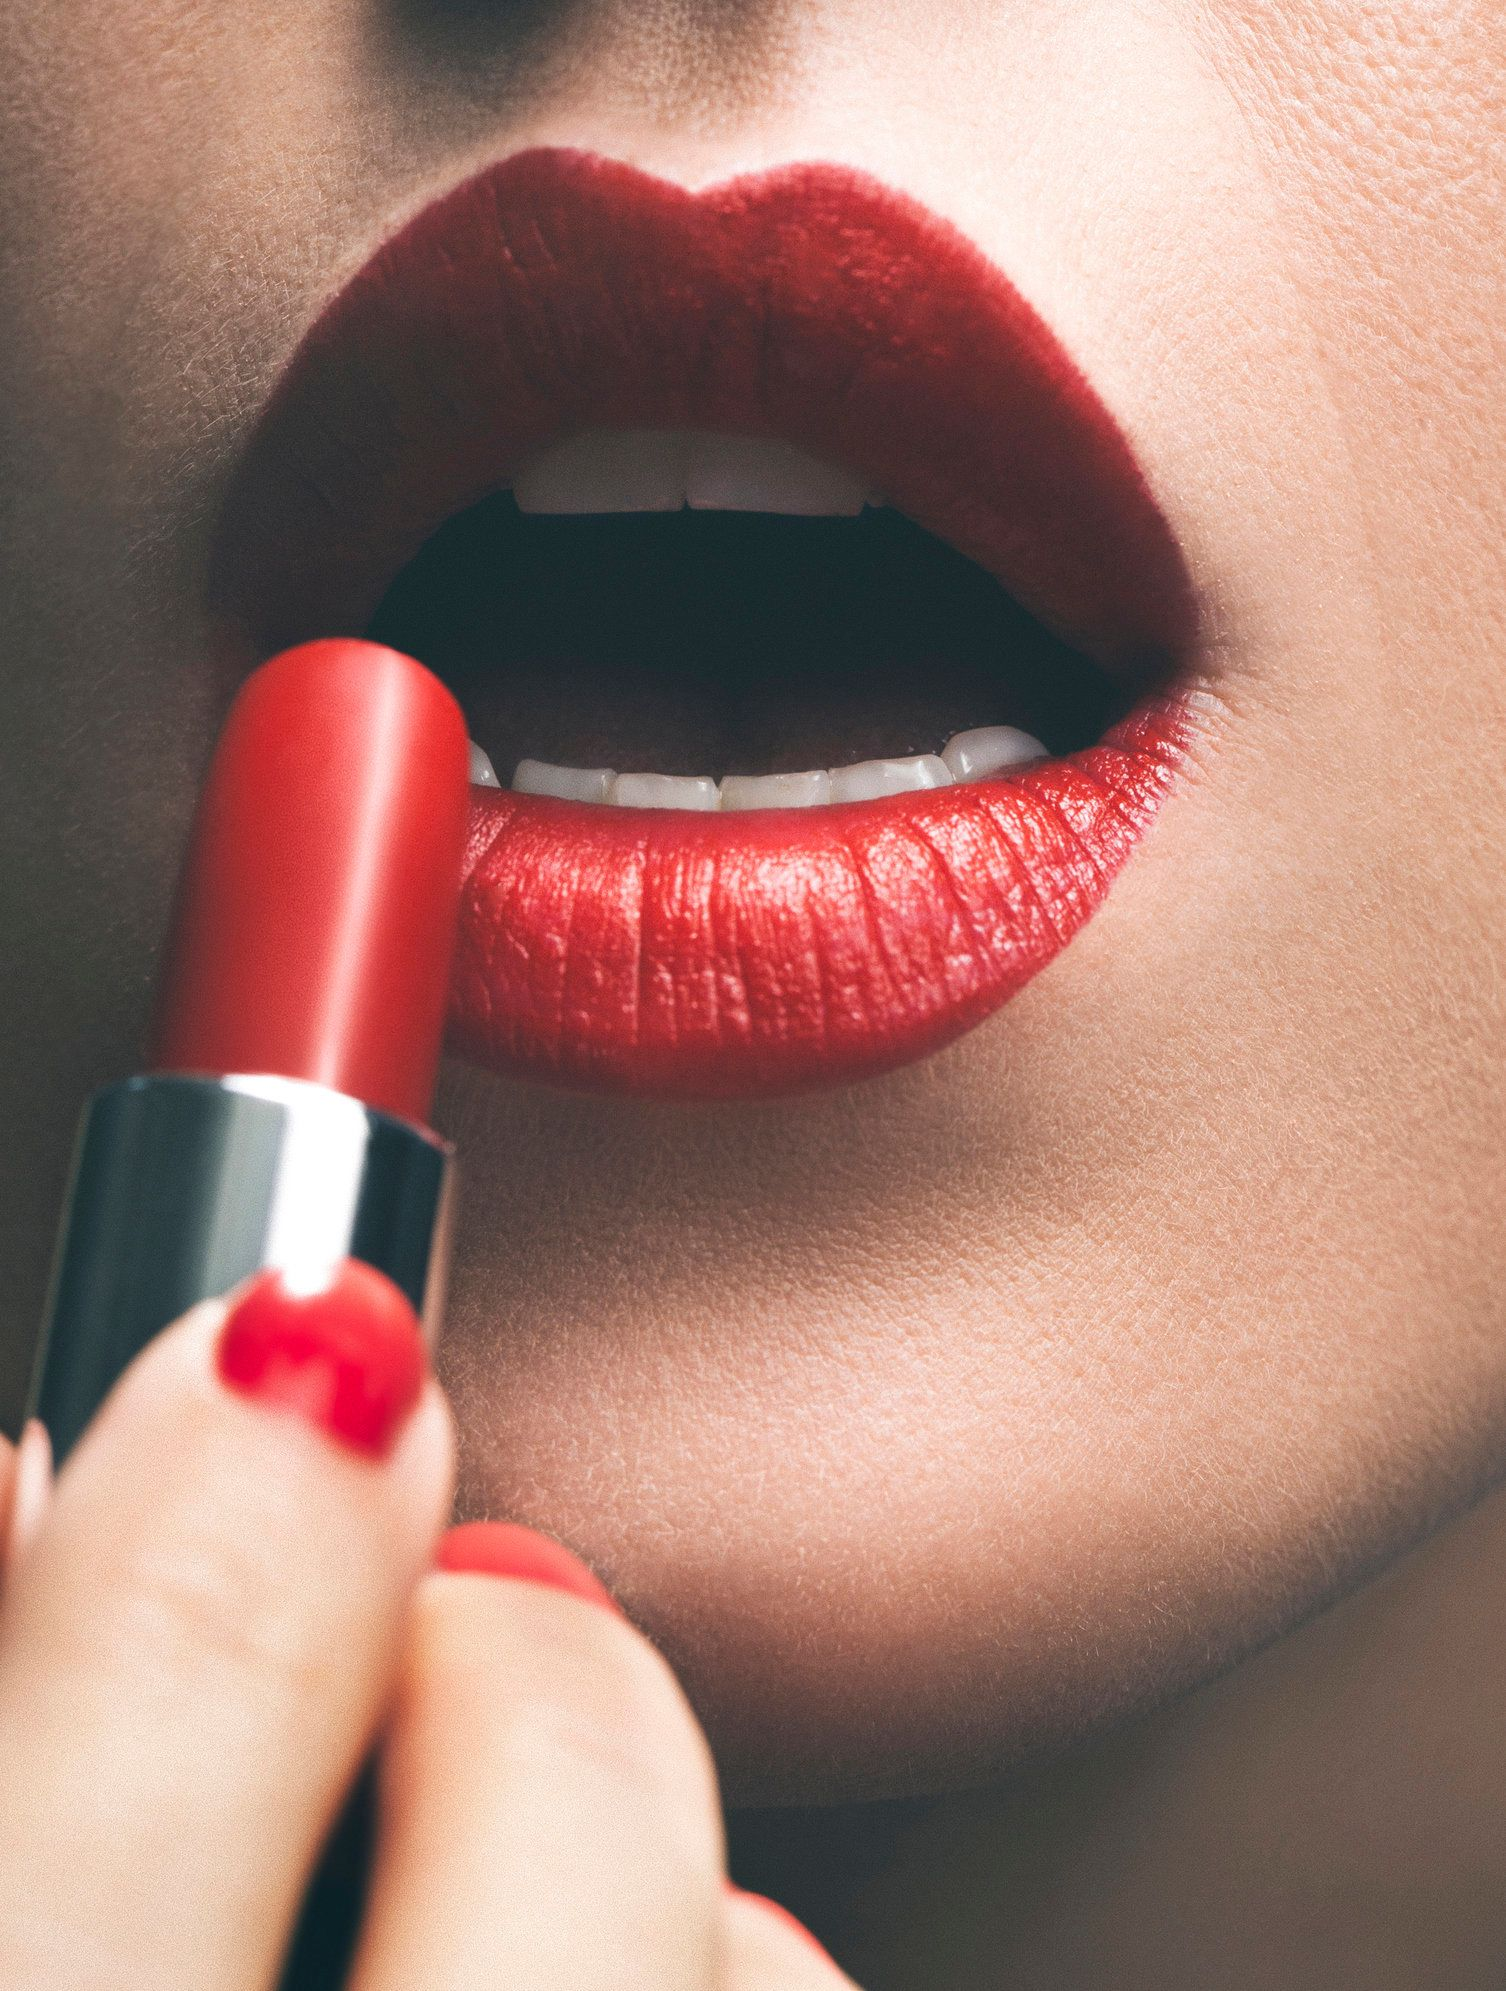 How To Determine The Best Lipstick Color For Your Exact Skin